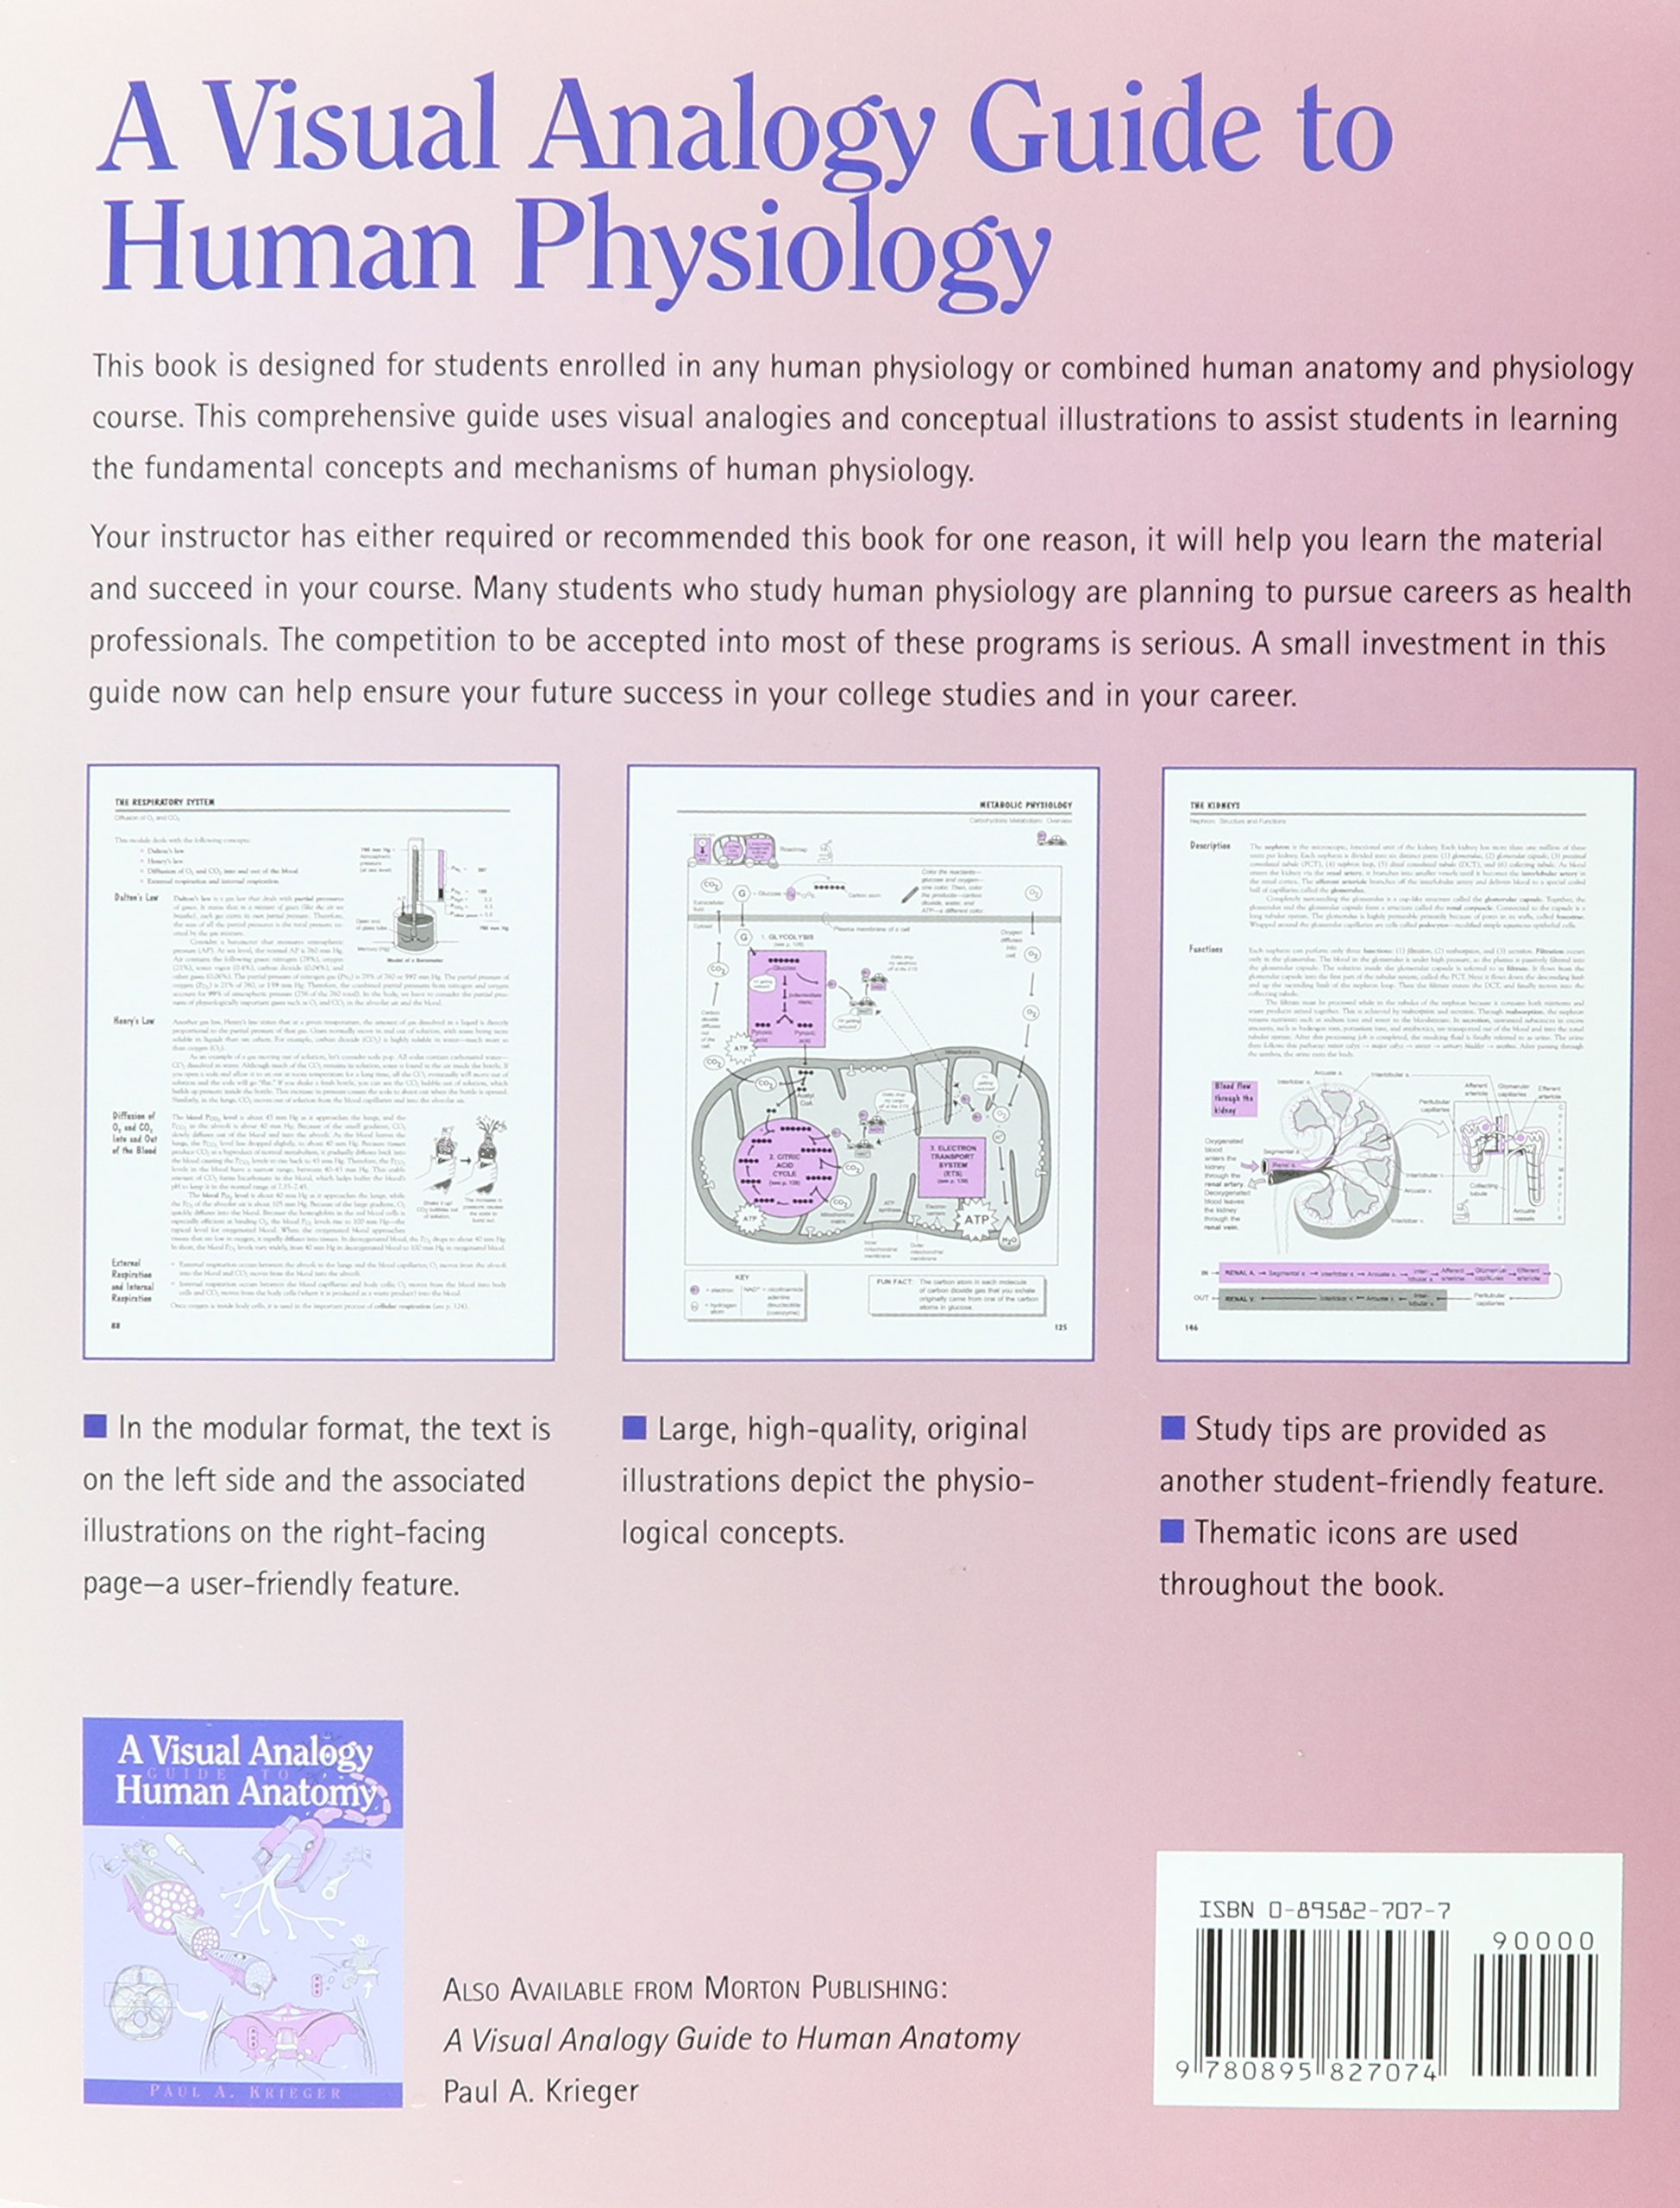 A Visual Analogy Guide To Human Physiology Paul A Krieger